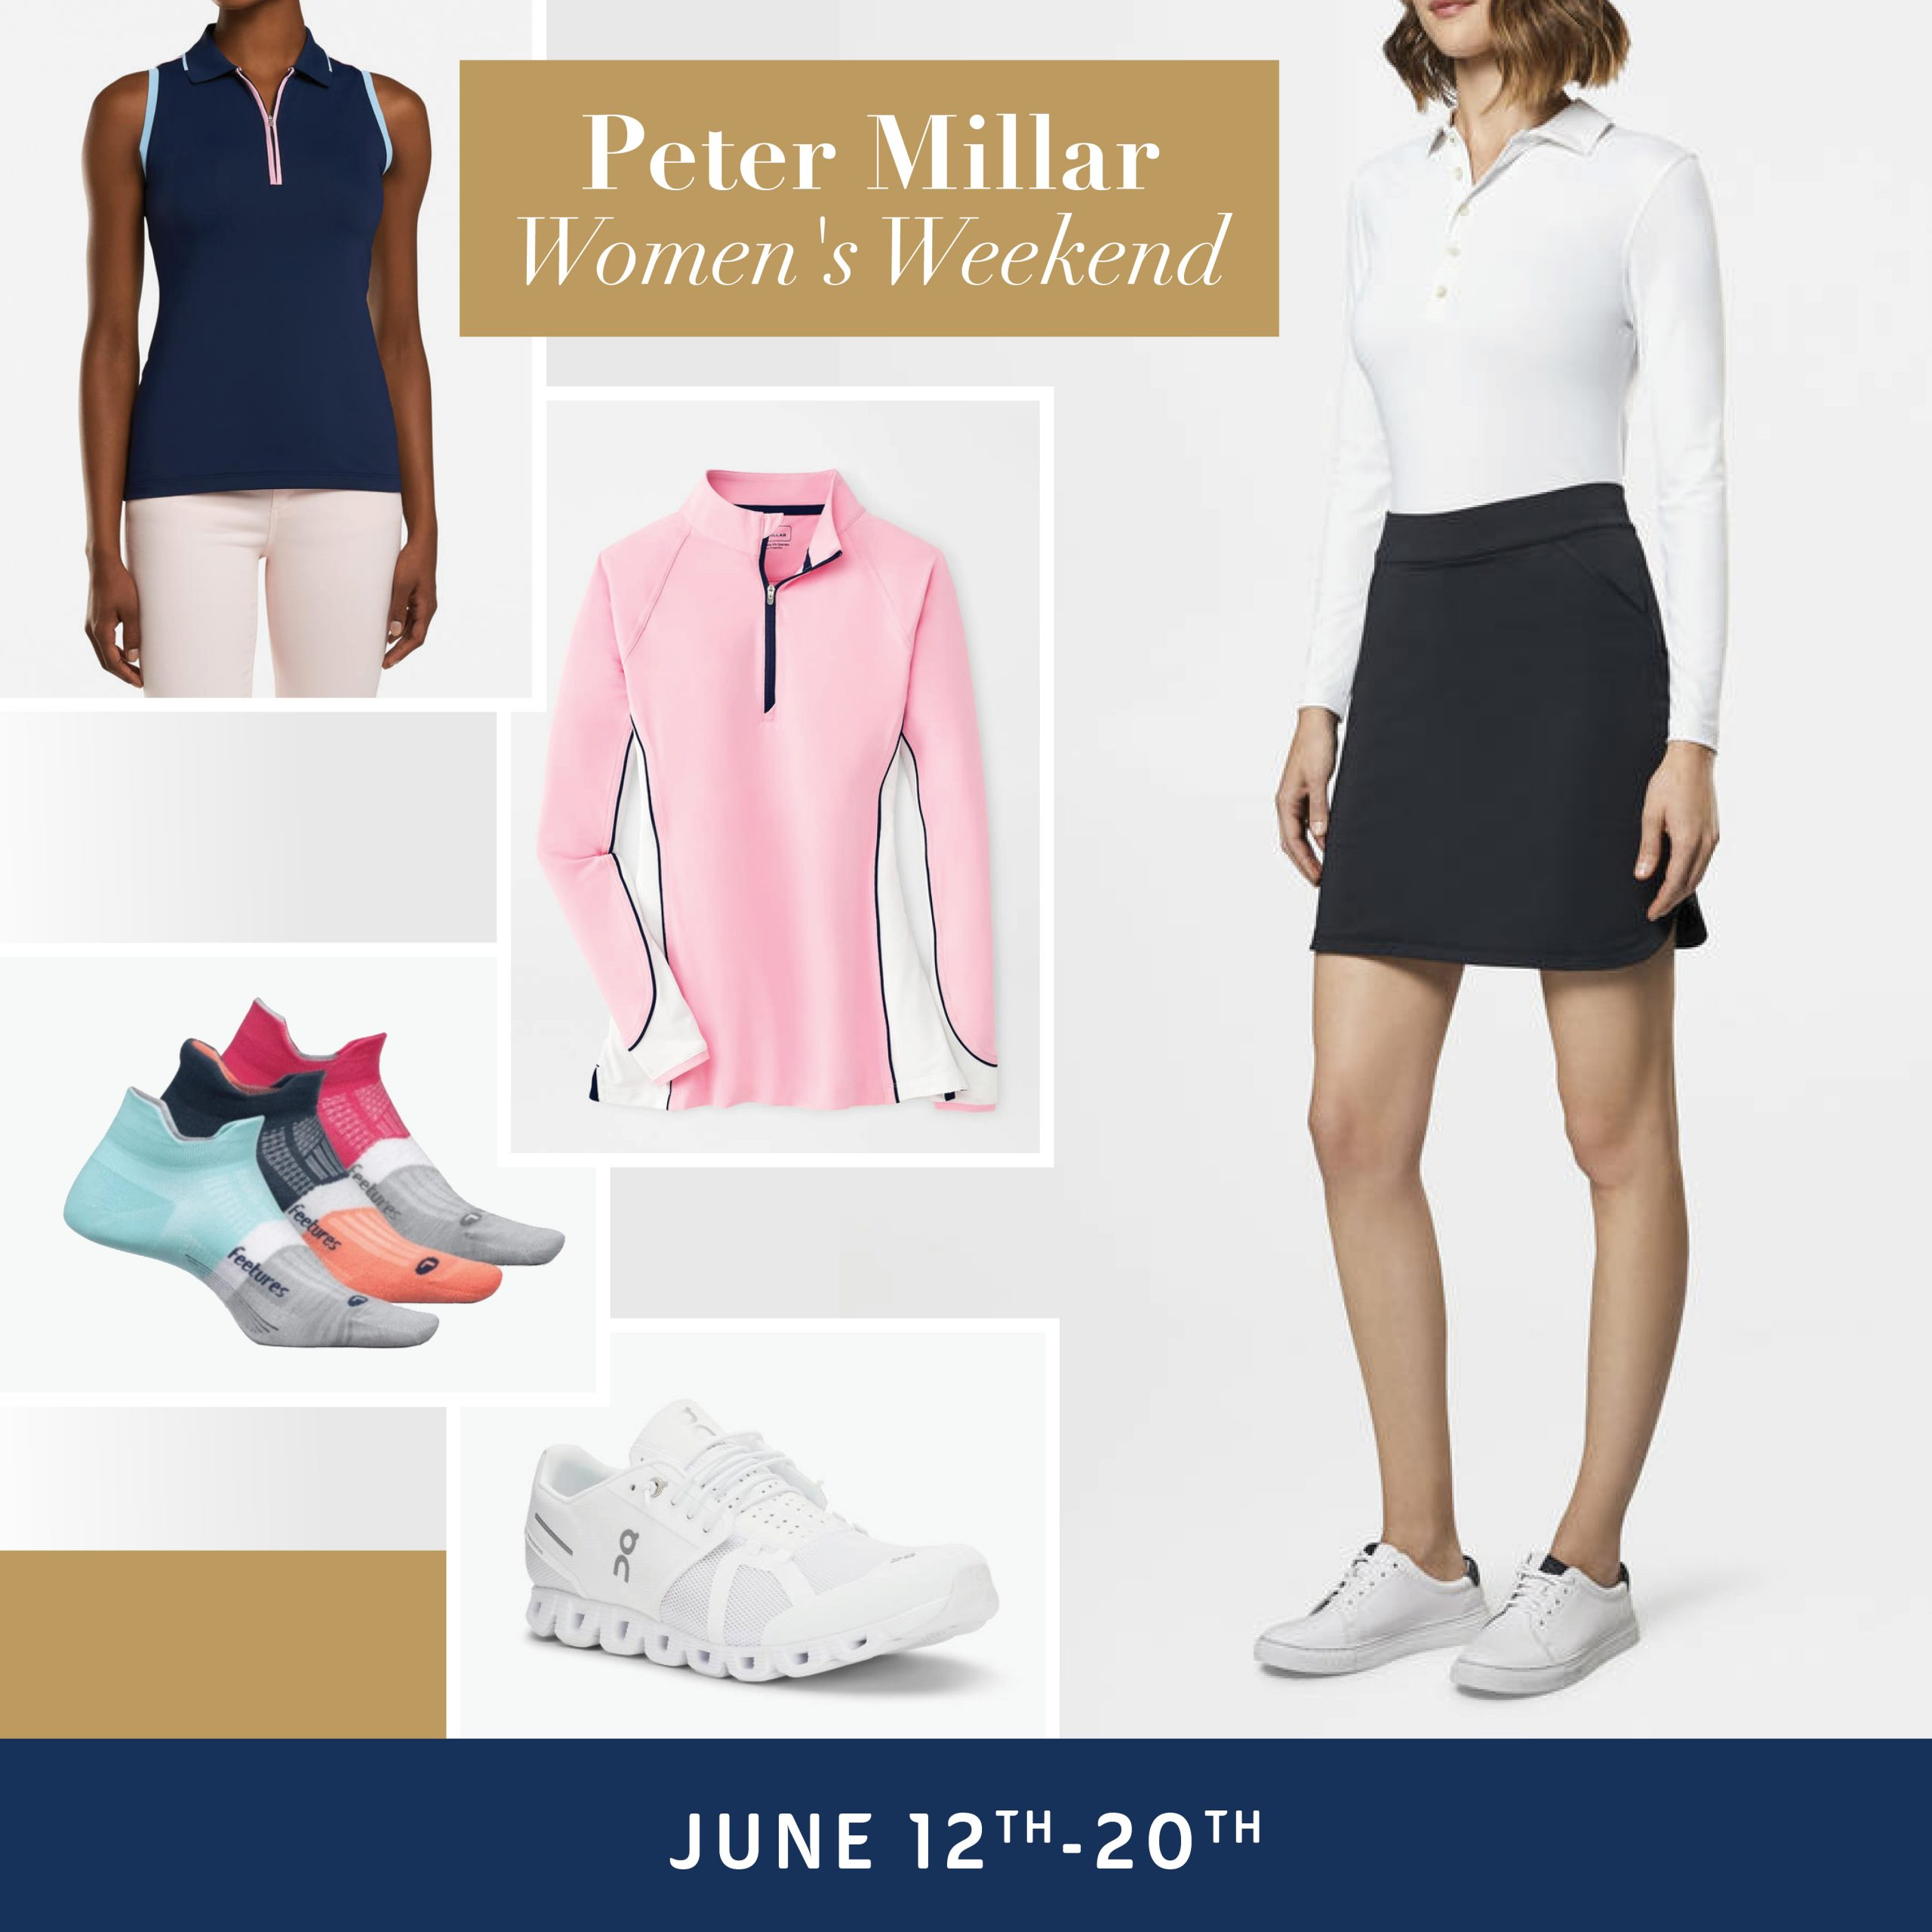 Peter Millar Women's Weekend